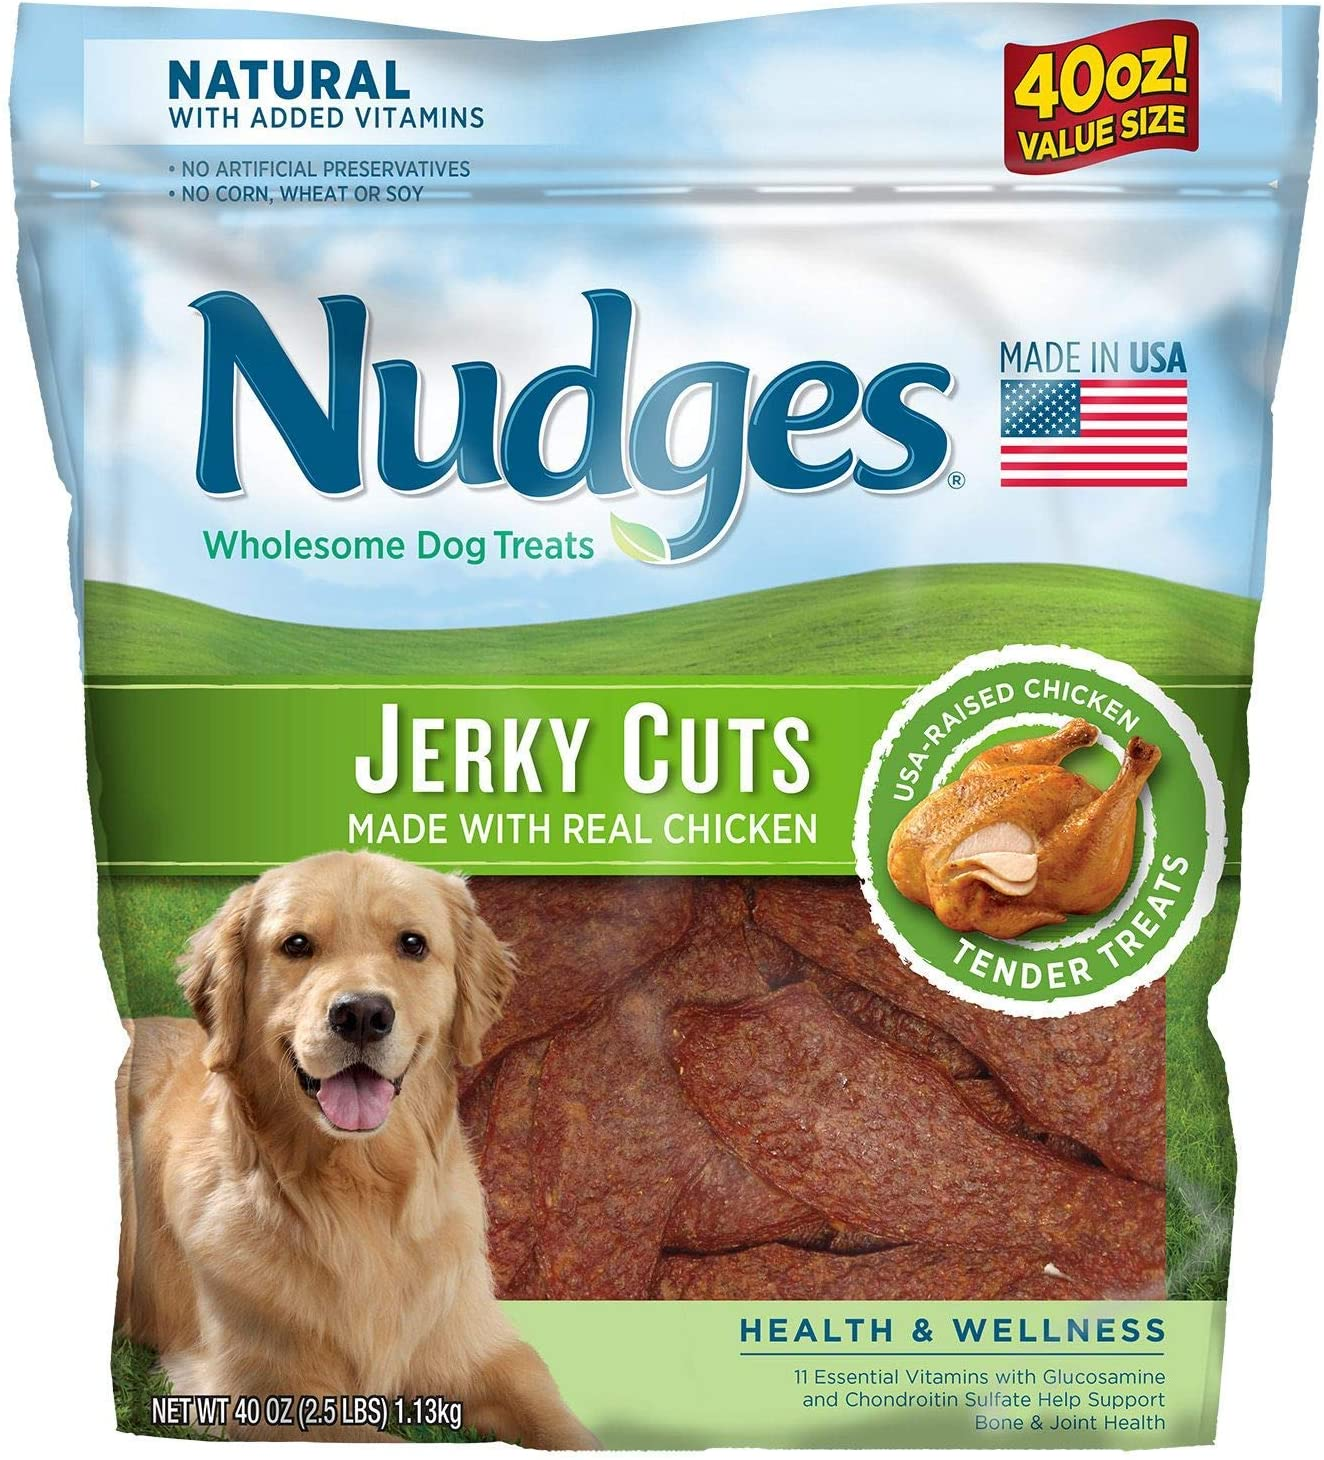 Nudges Chicken Jerky Cuts, 40 oz.